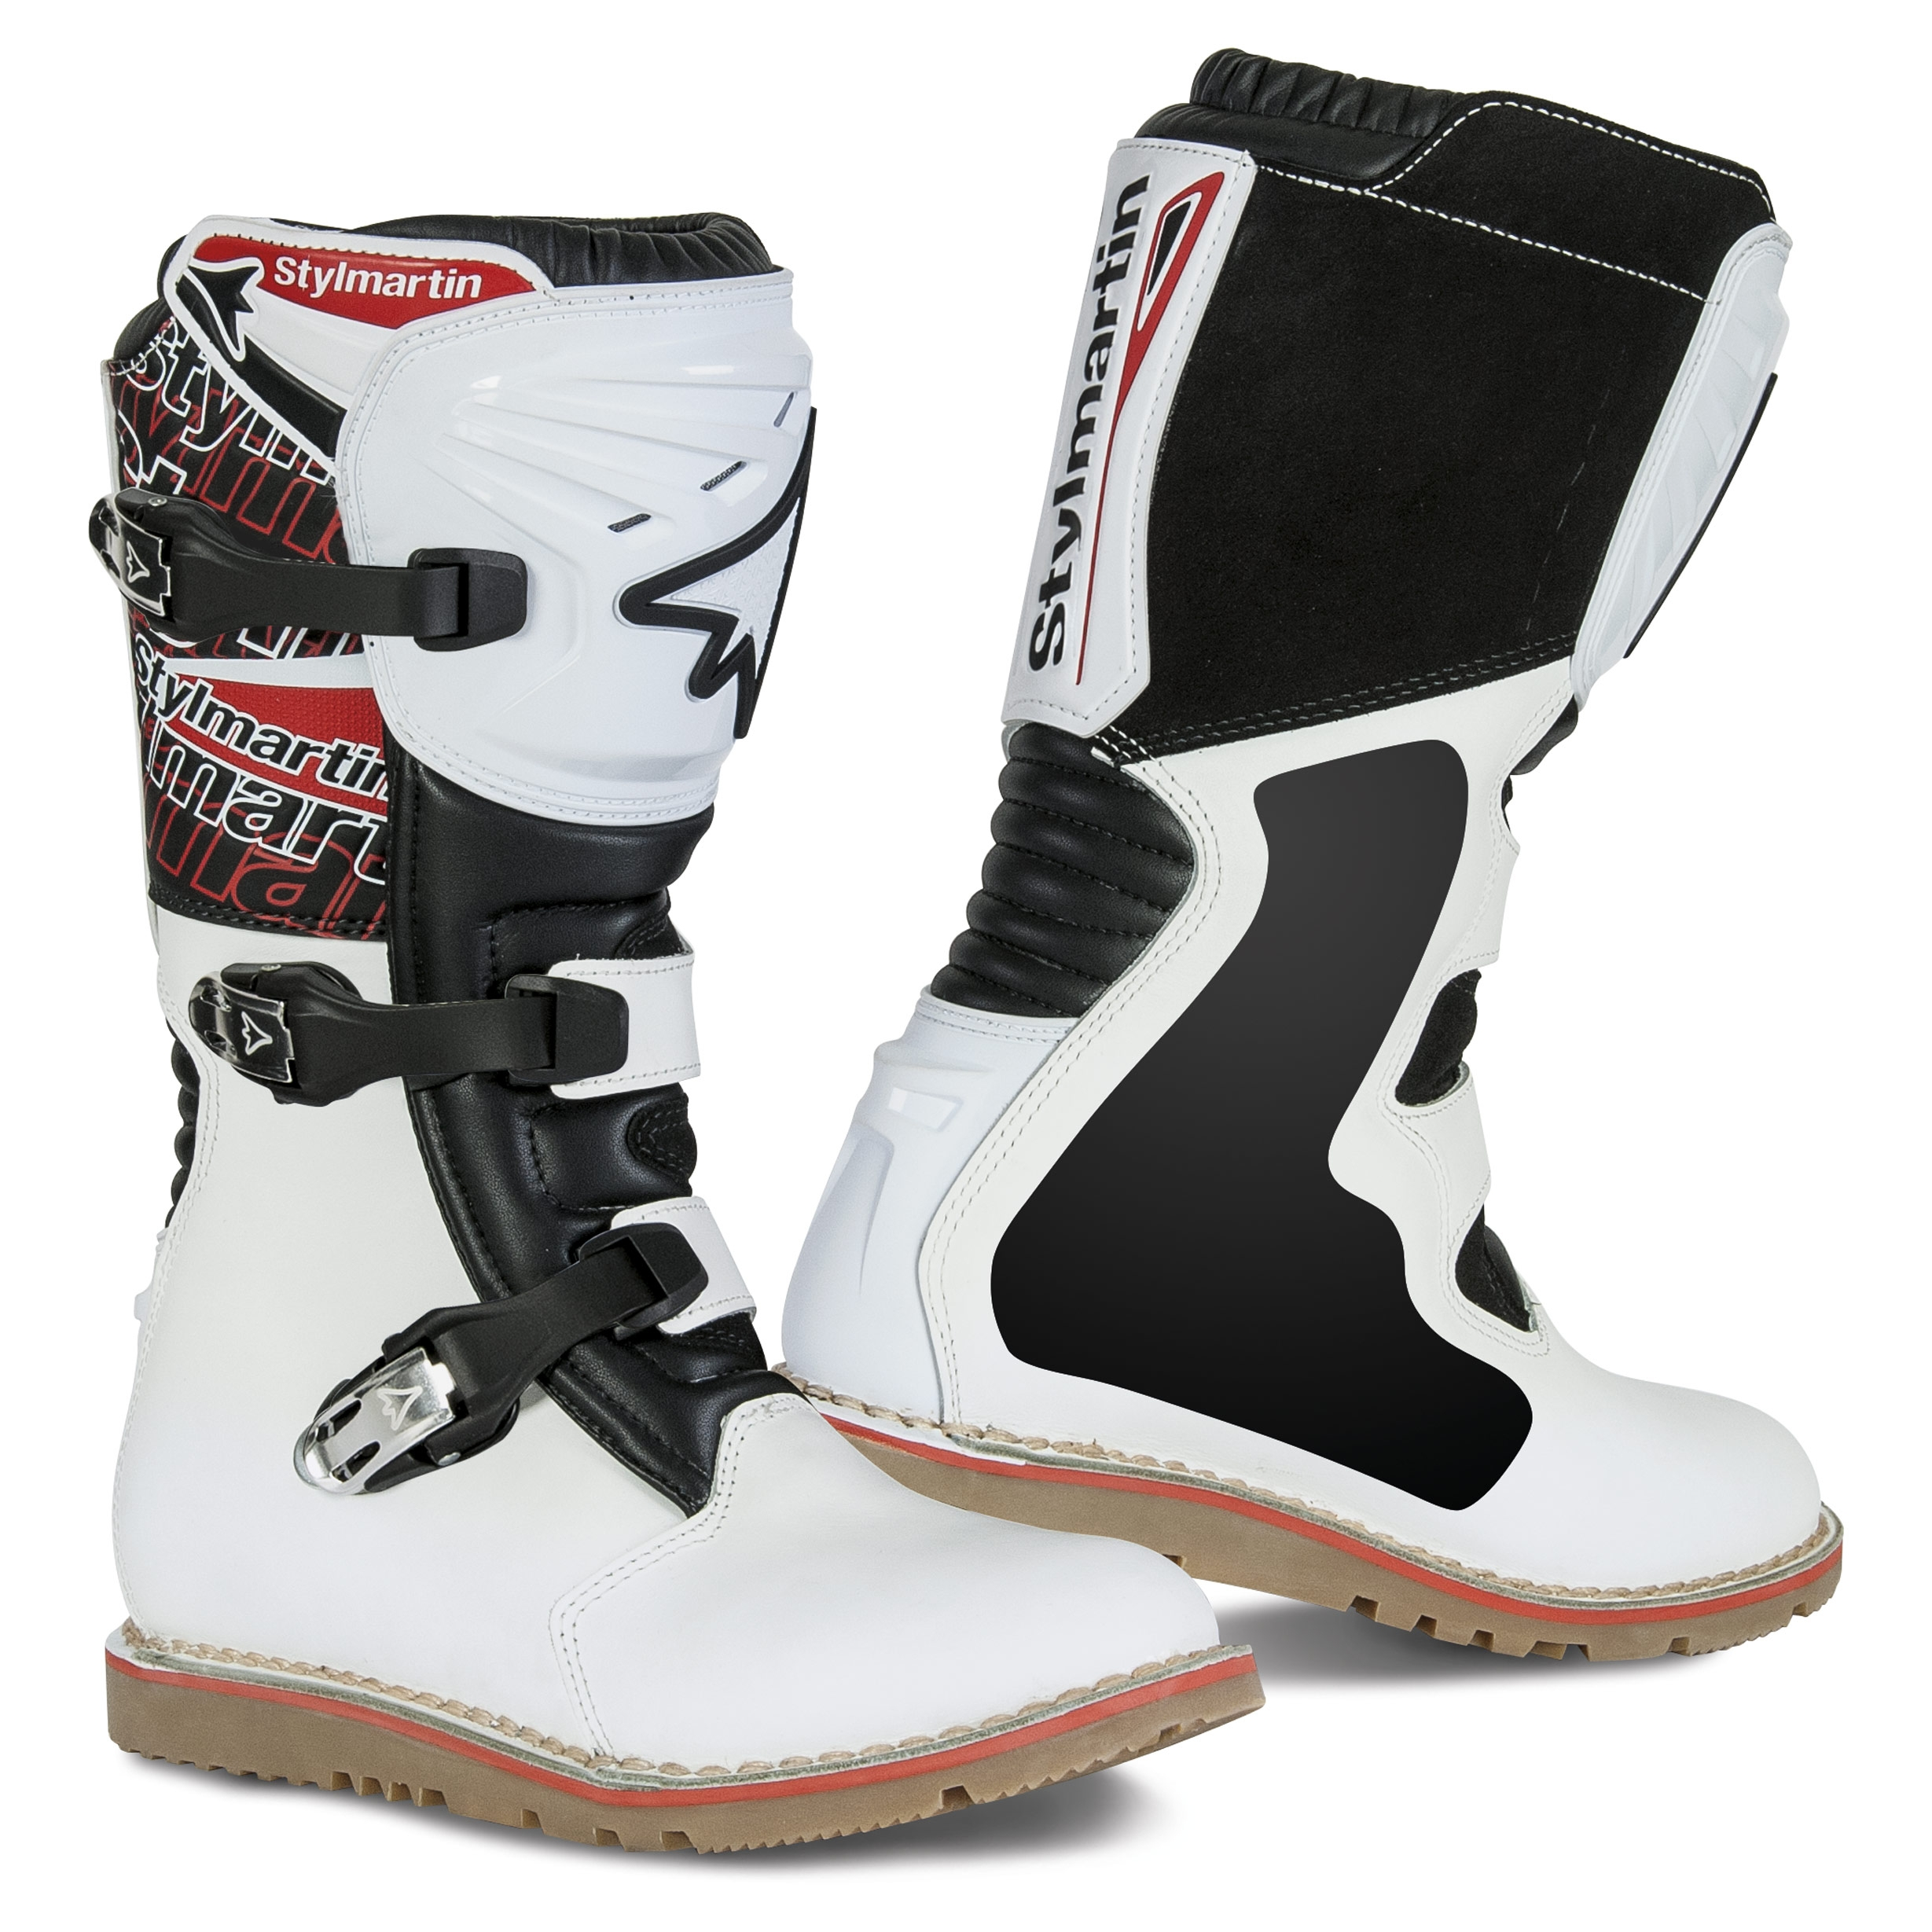 f070117f4f9 Details about Stylmartin Impact Evo Trial Boots White